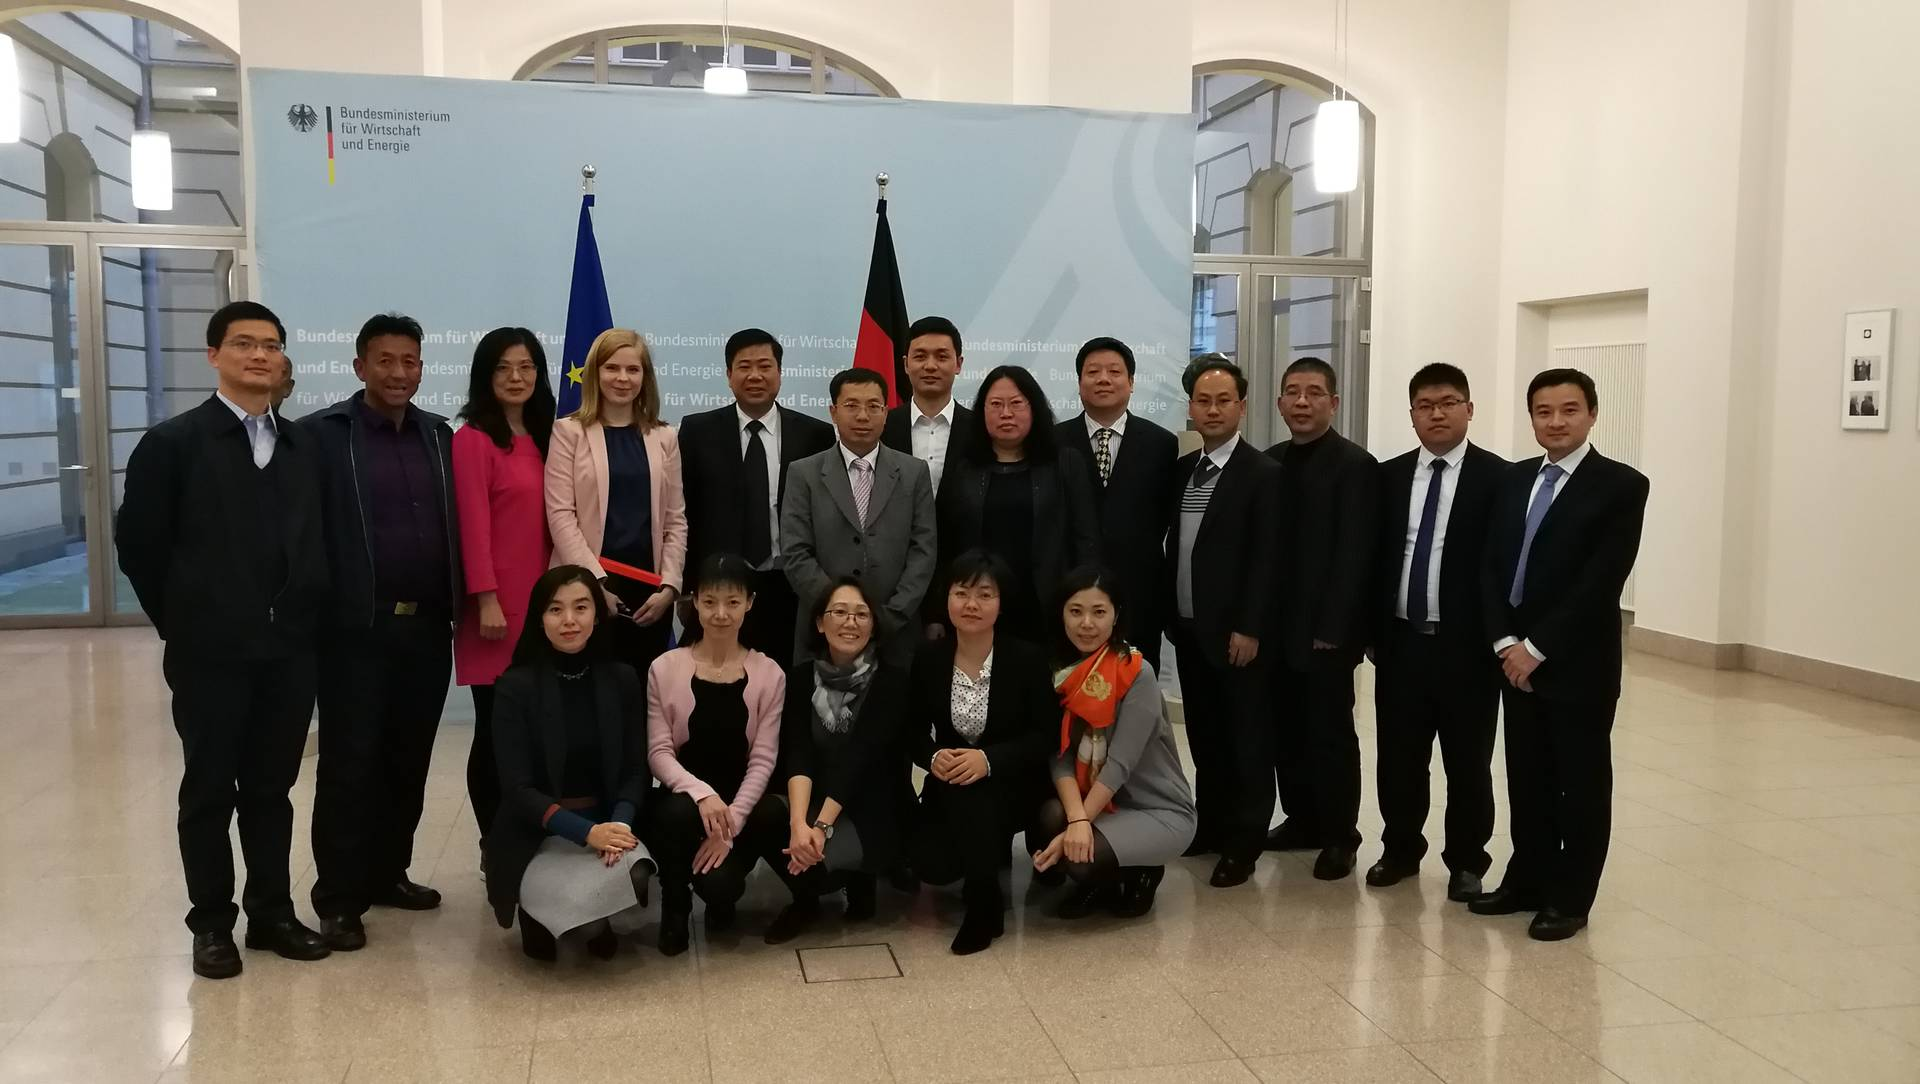 Group photo of Chinese delegation at BMWi.